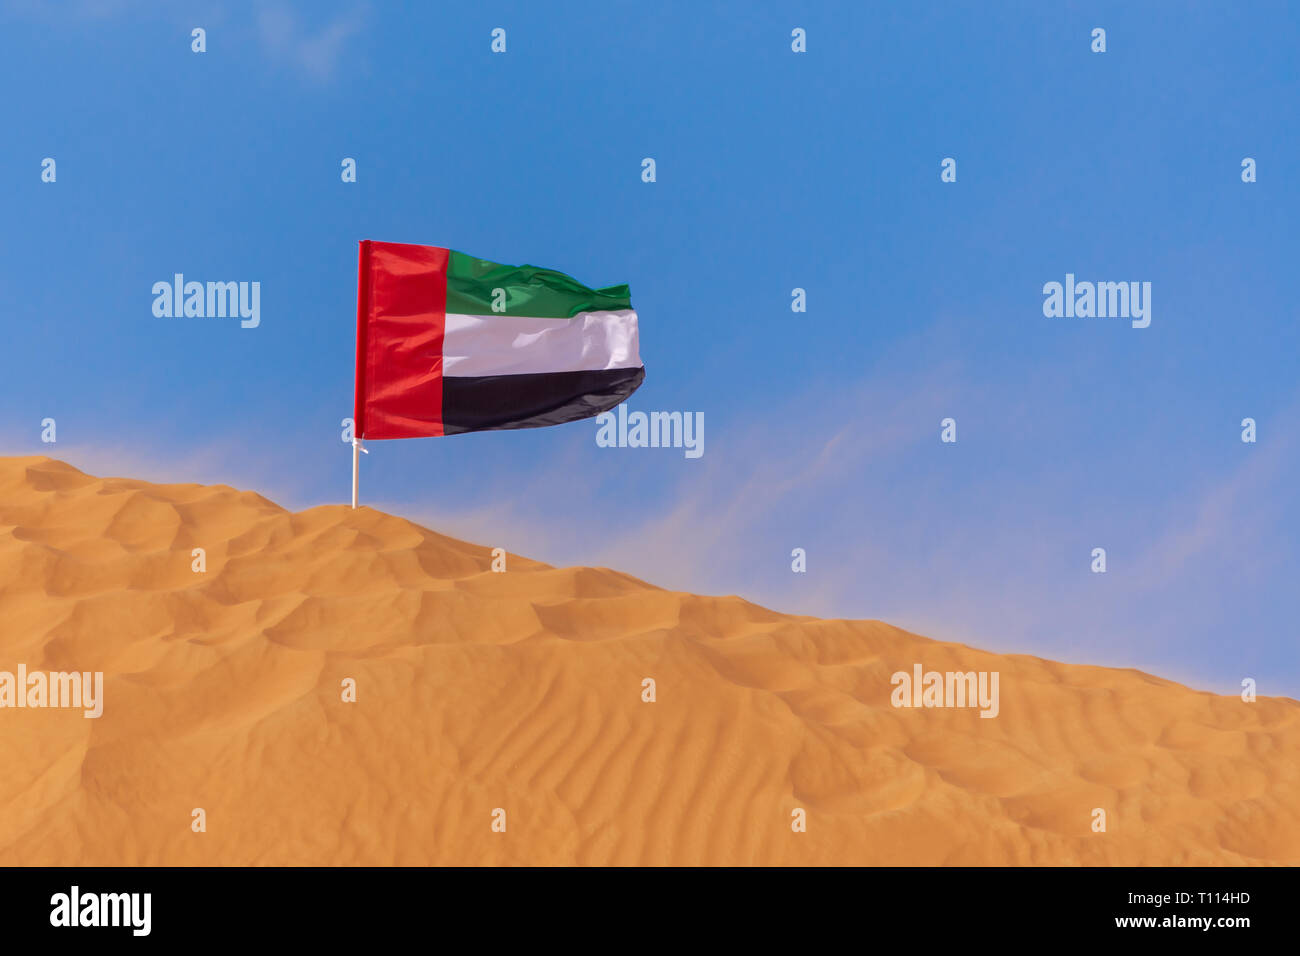 UAE Flag blowing in the wind on the top of an orange sand dune in the blue sky in Ras al Khaimah, United Arab Emirates. Stock Photo